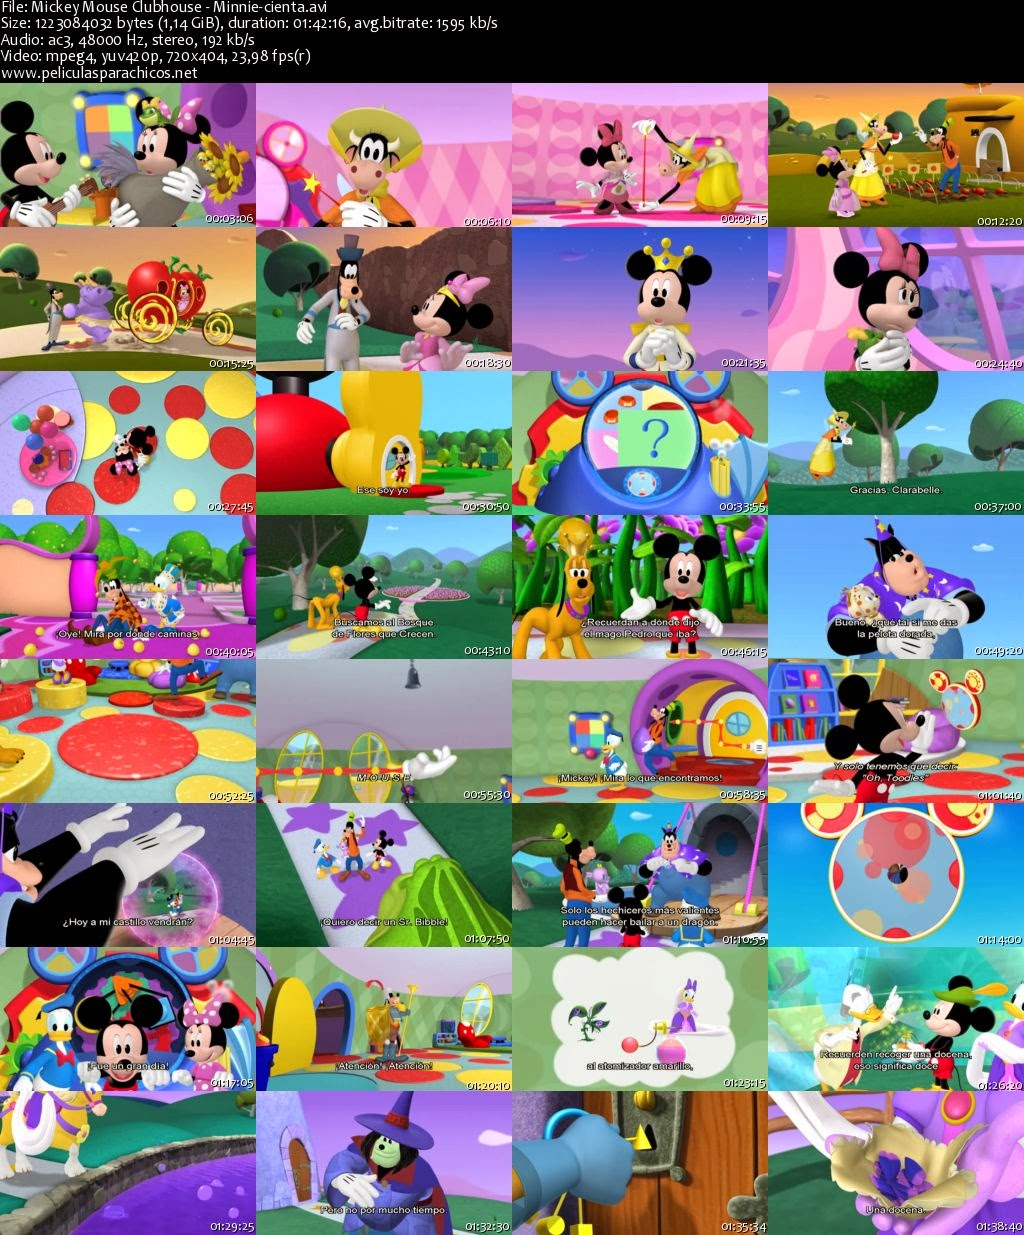 Descargar mickey mouse clubhouse minnie cienta dvd rip - Mickey mouse minnie cienta ...